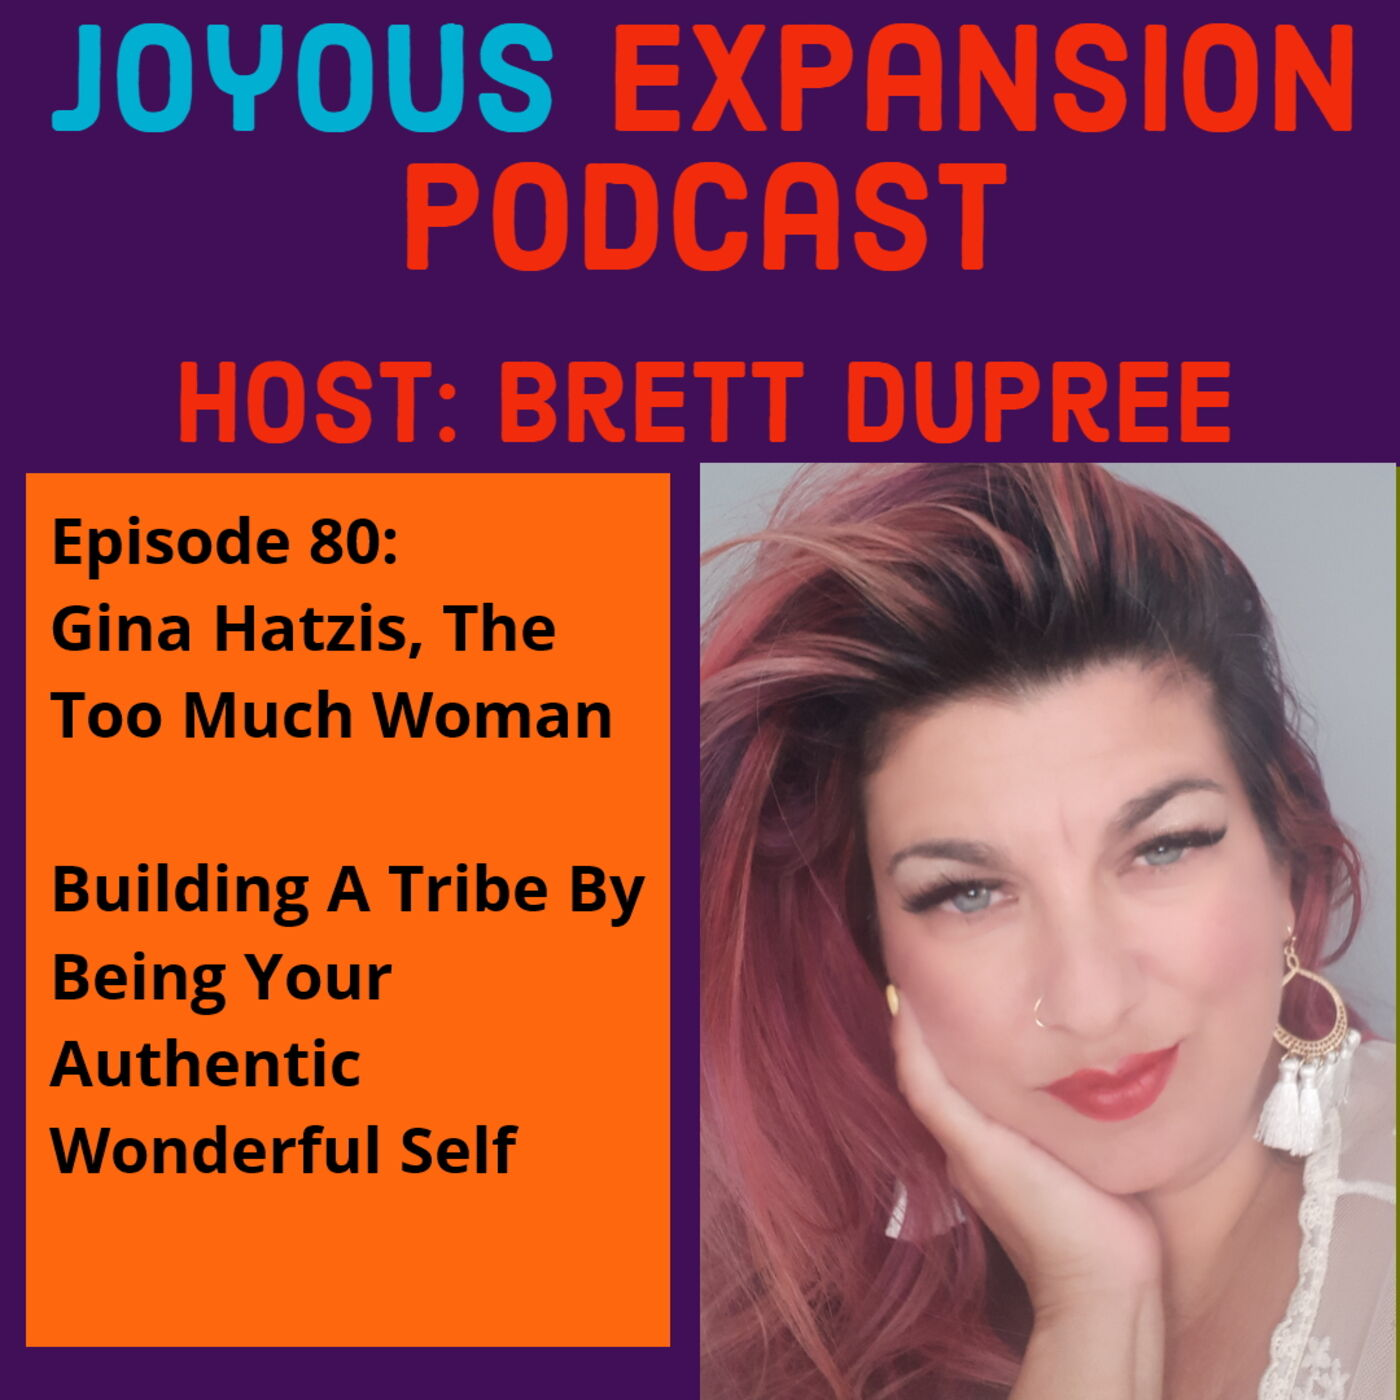 Joyous Expansion #80 - Gina Hatzis - Building A Tribe By Being Your Authentic Wonderful Self